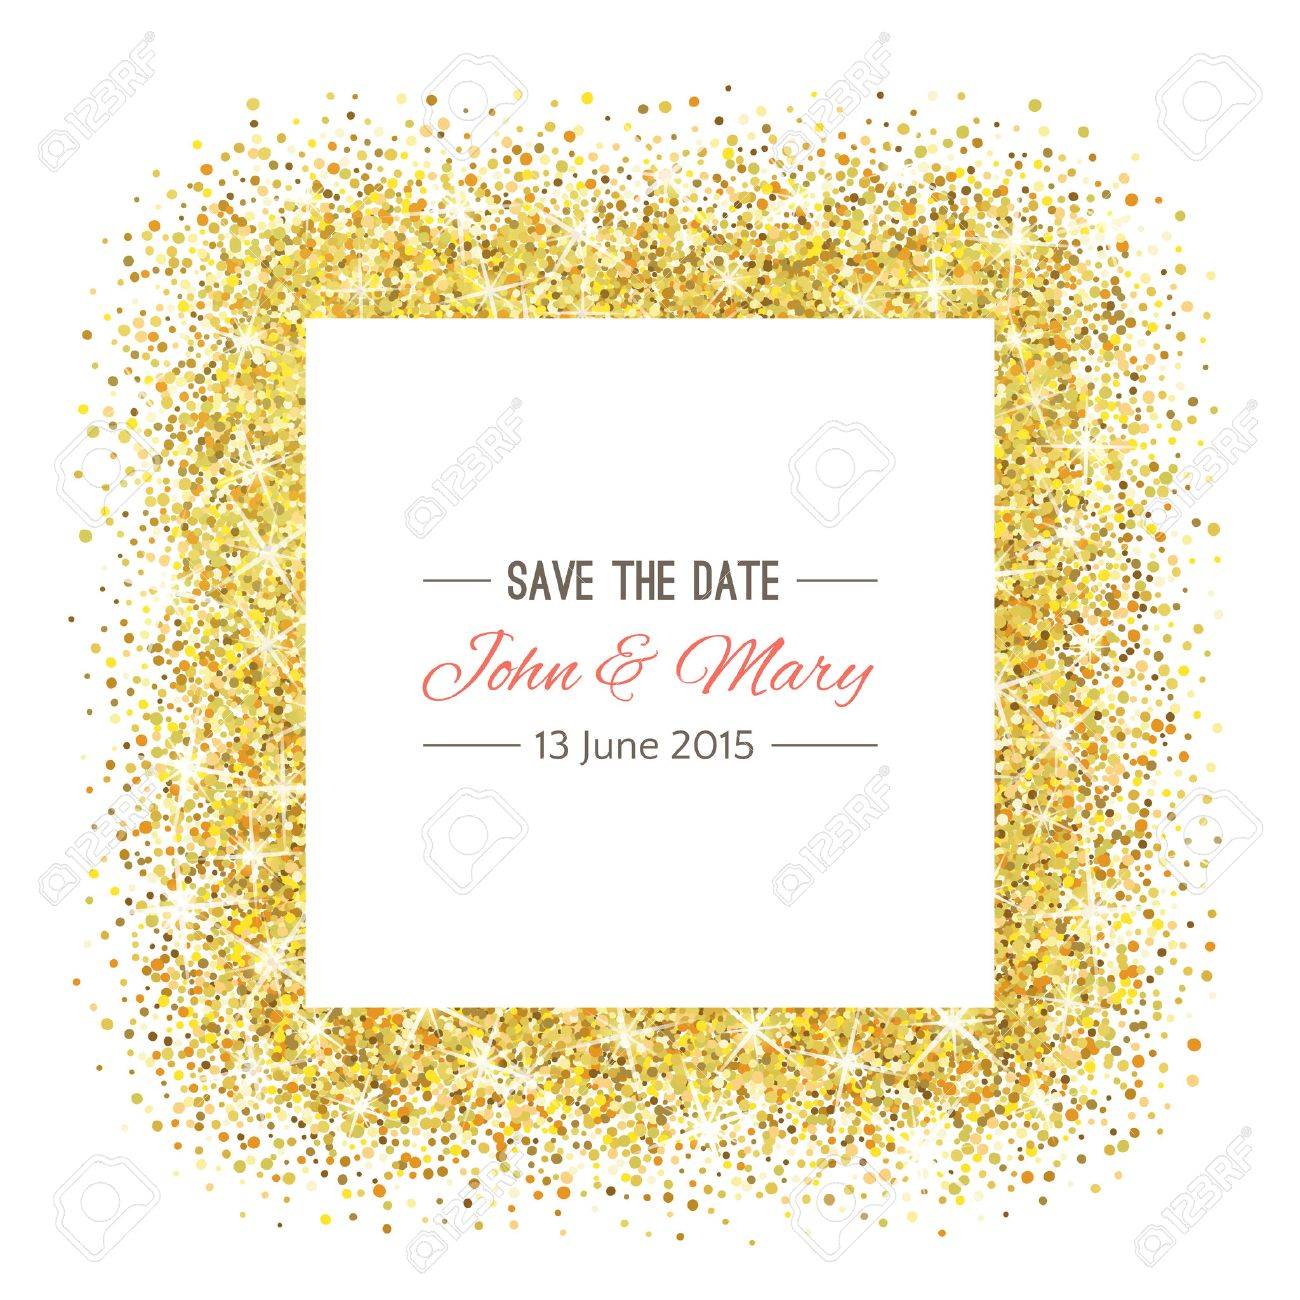 Perfect wedding template with golden confetti theme. Ideal for Save The Date, baby shower, mothers day, valentines day, birthday cards, invitations. - 53524099